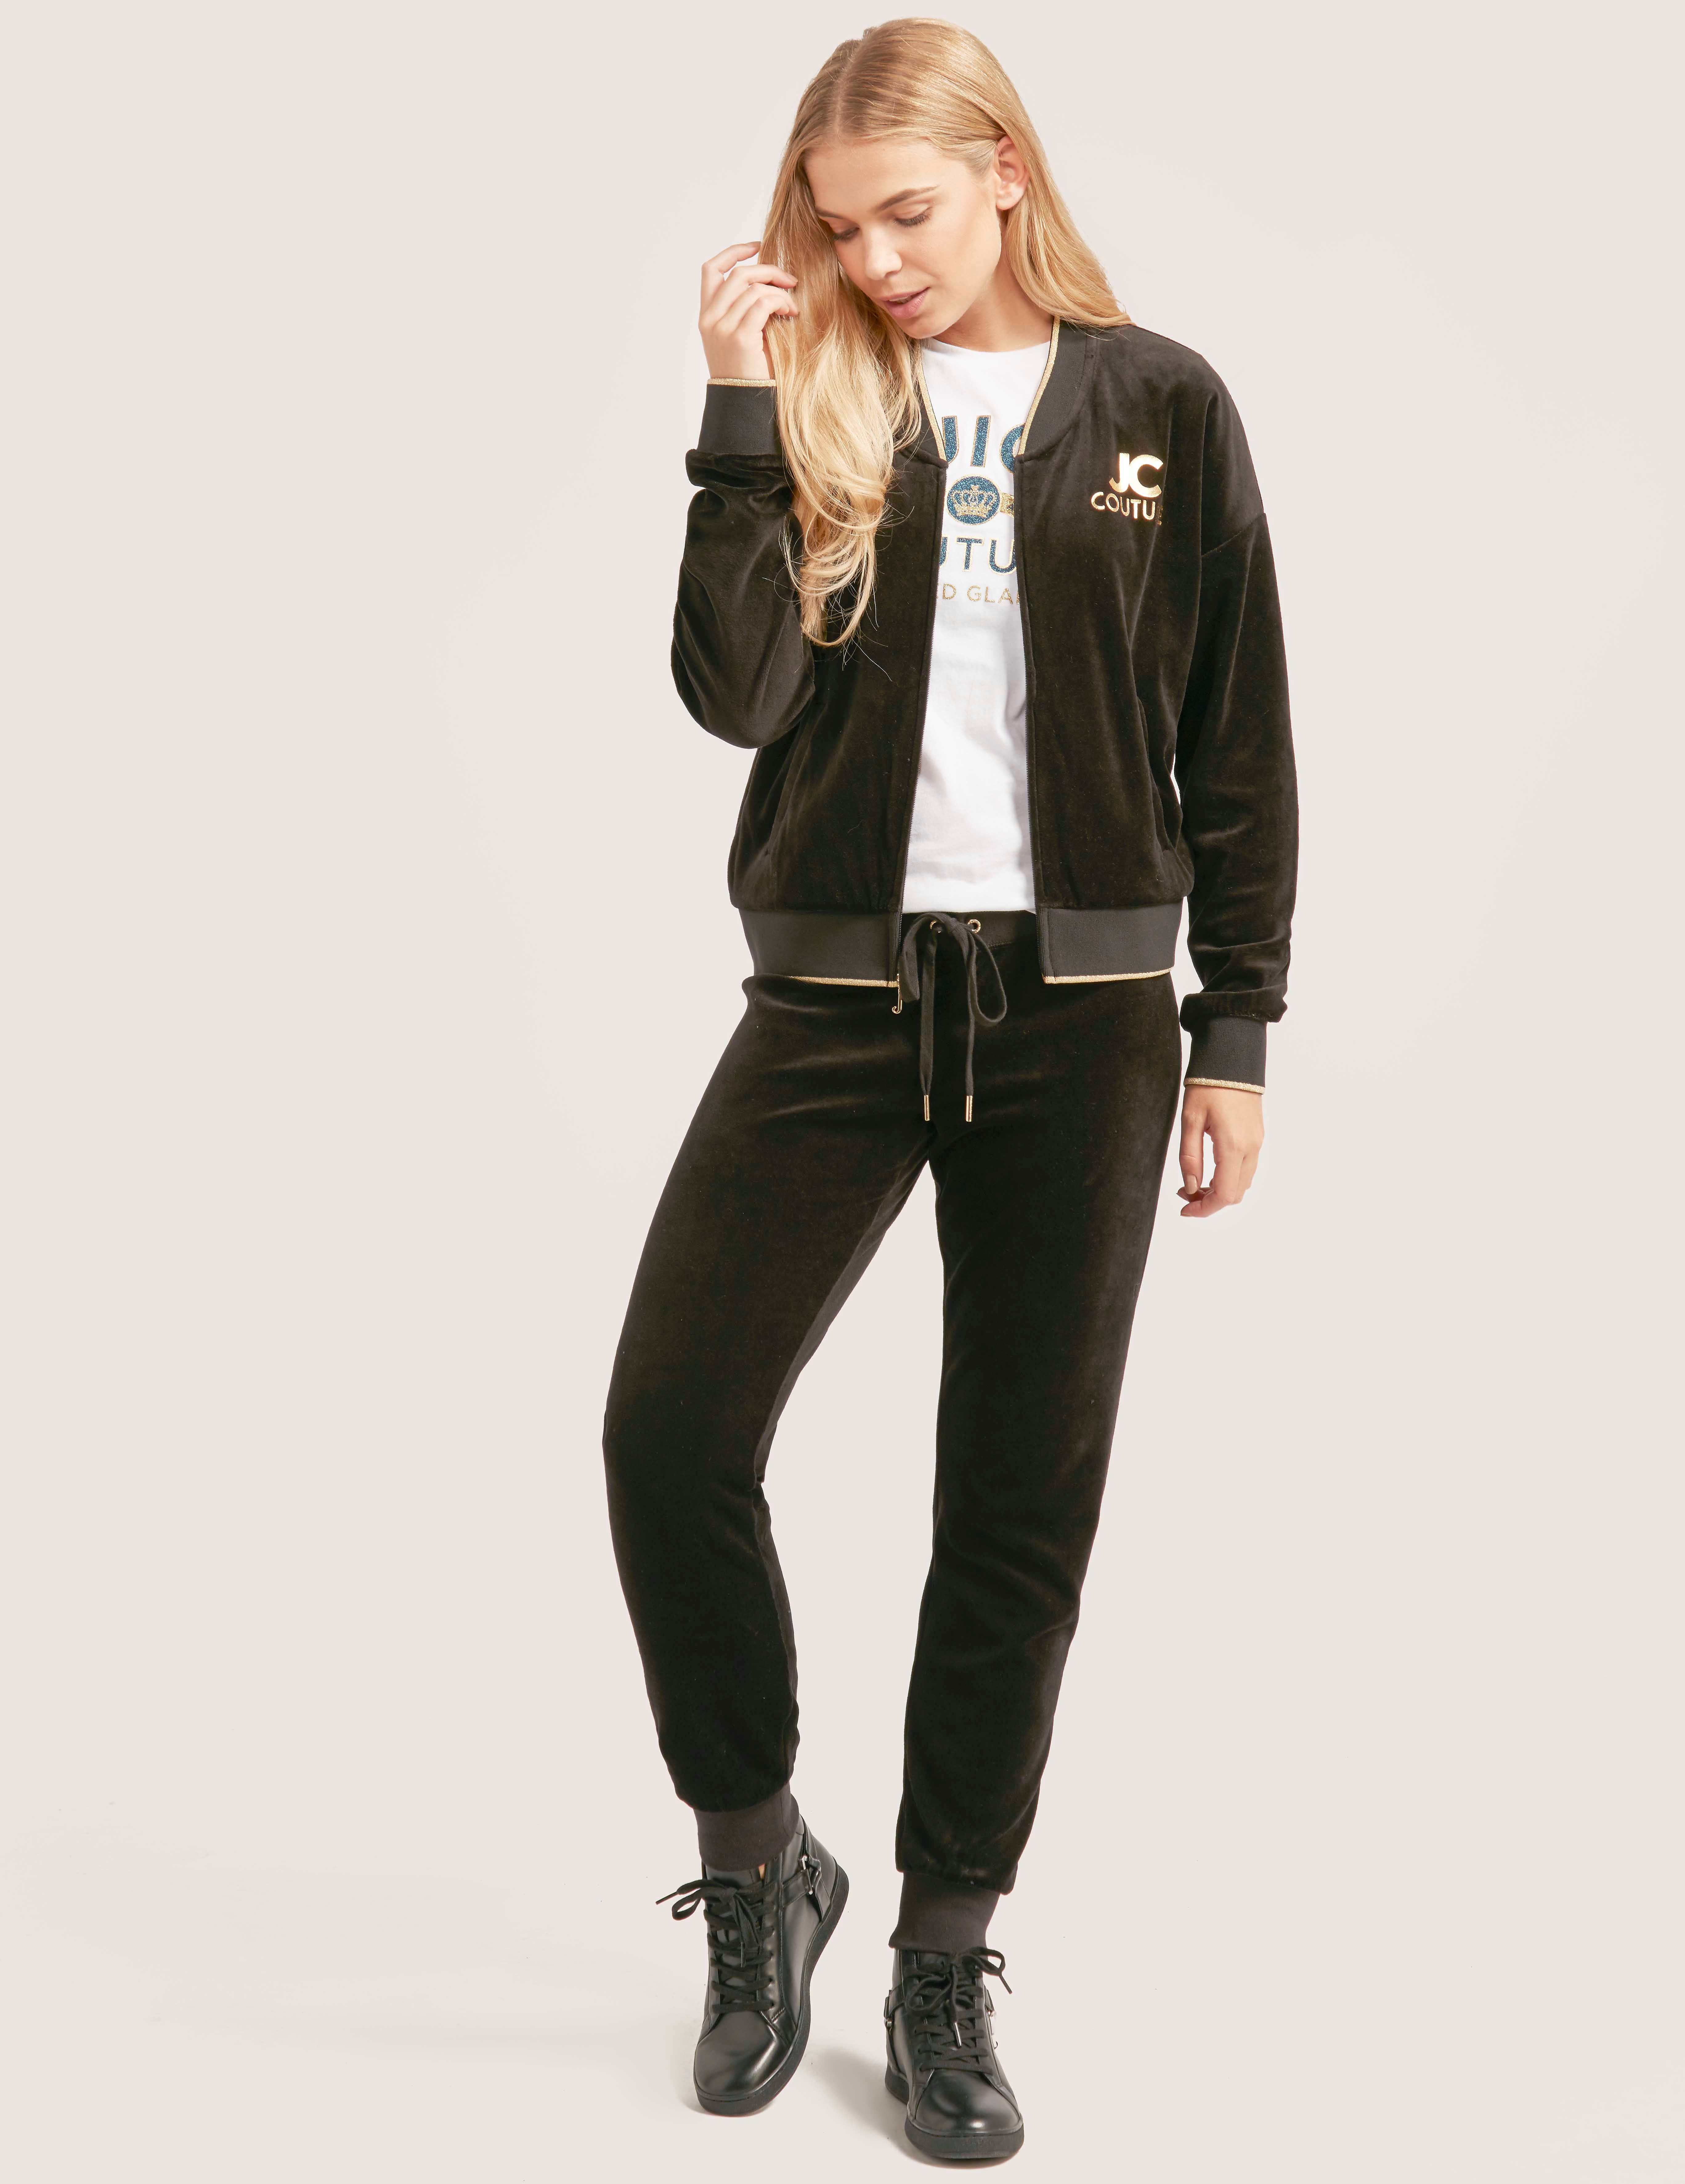 Juicy Couture Eau De Couture Jacket